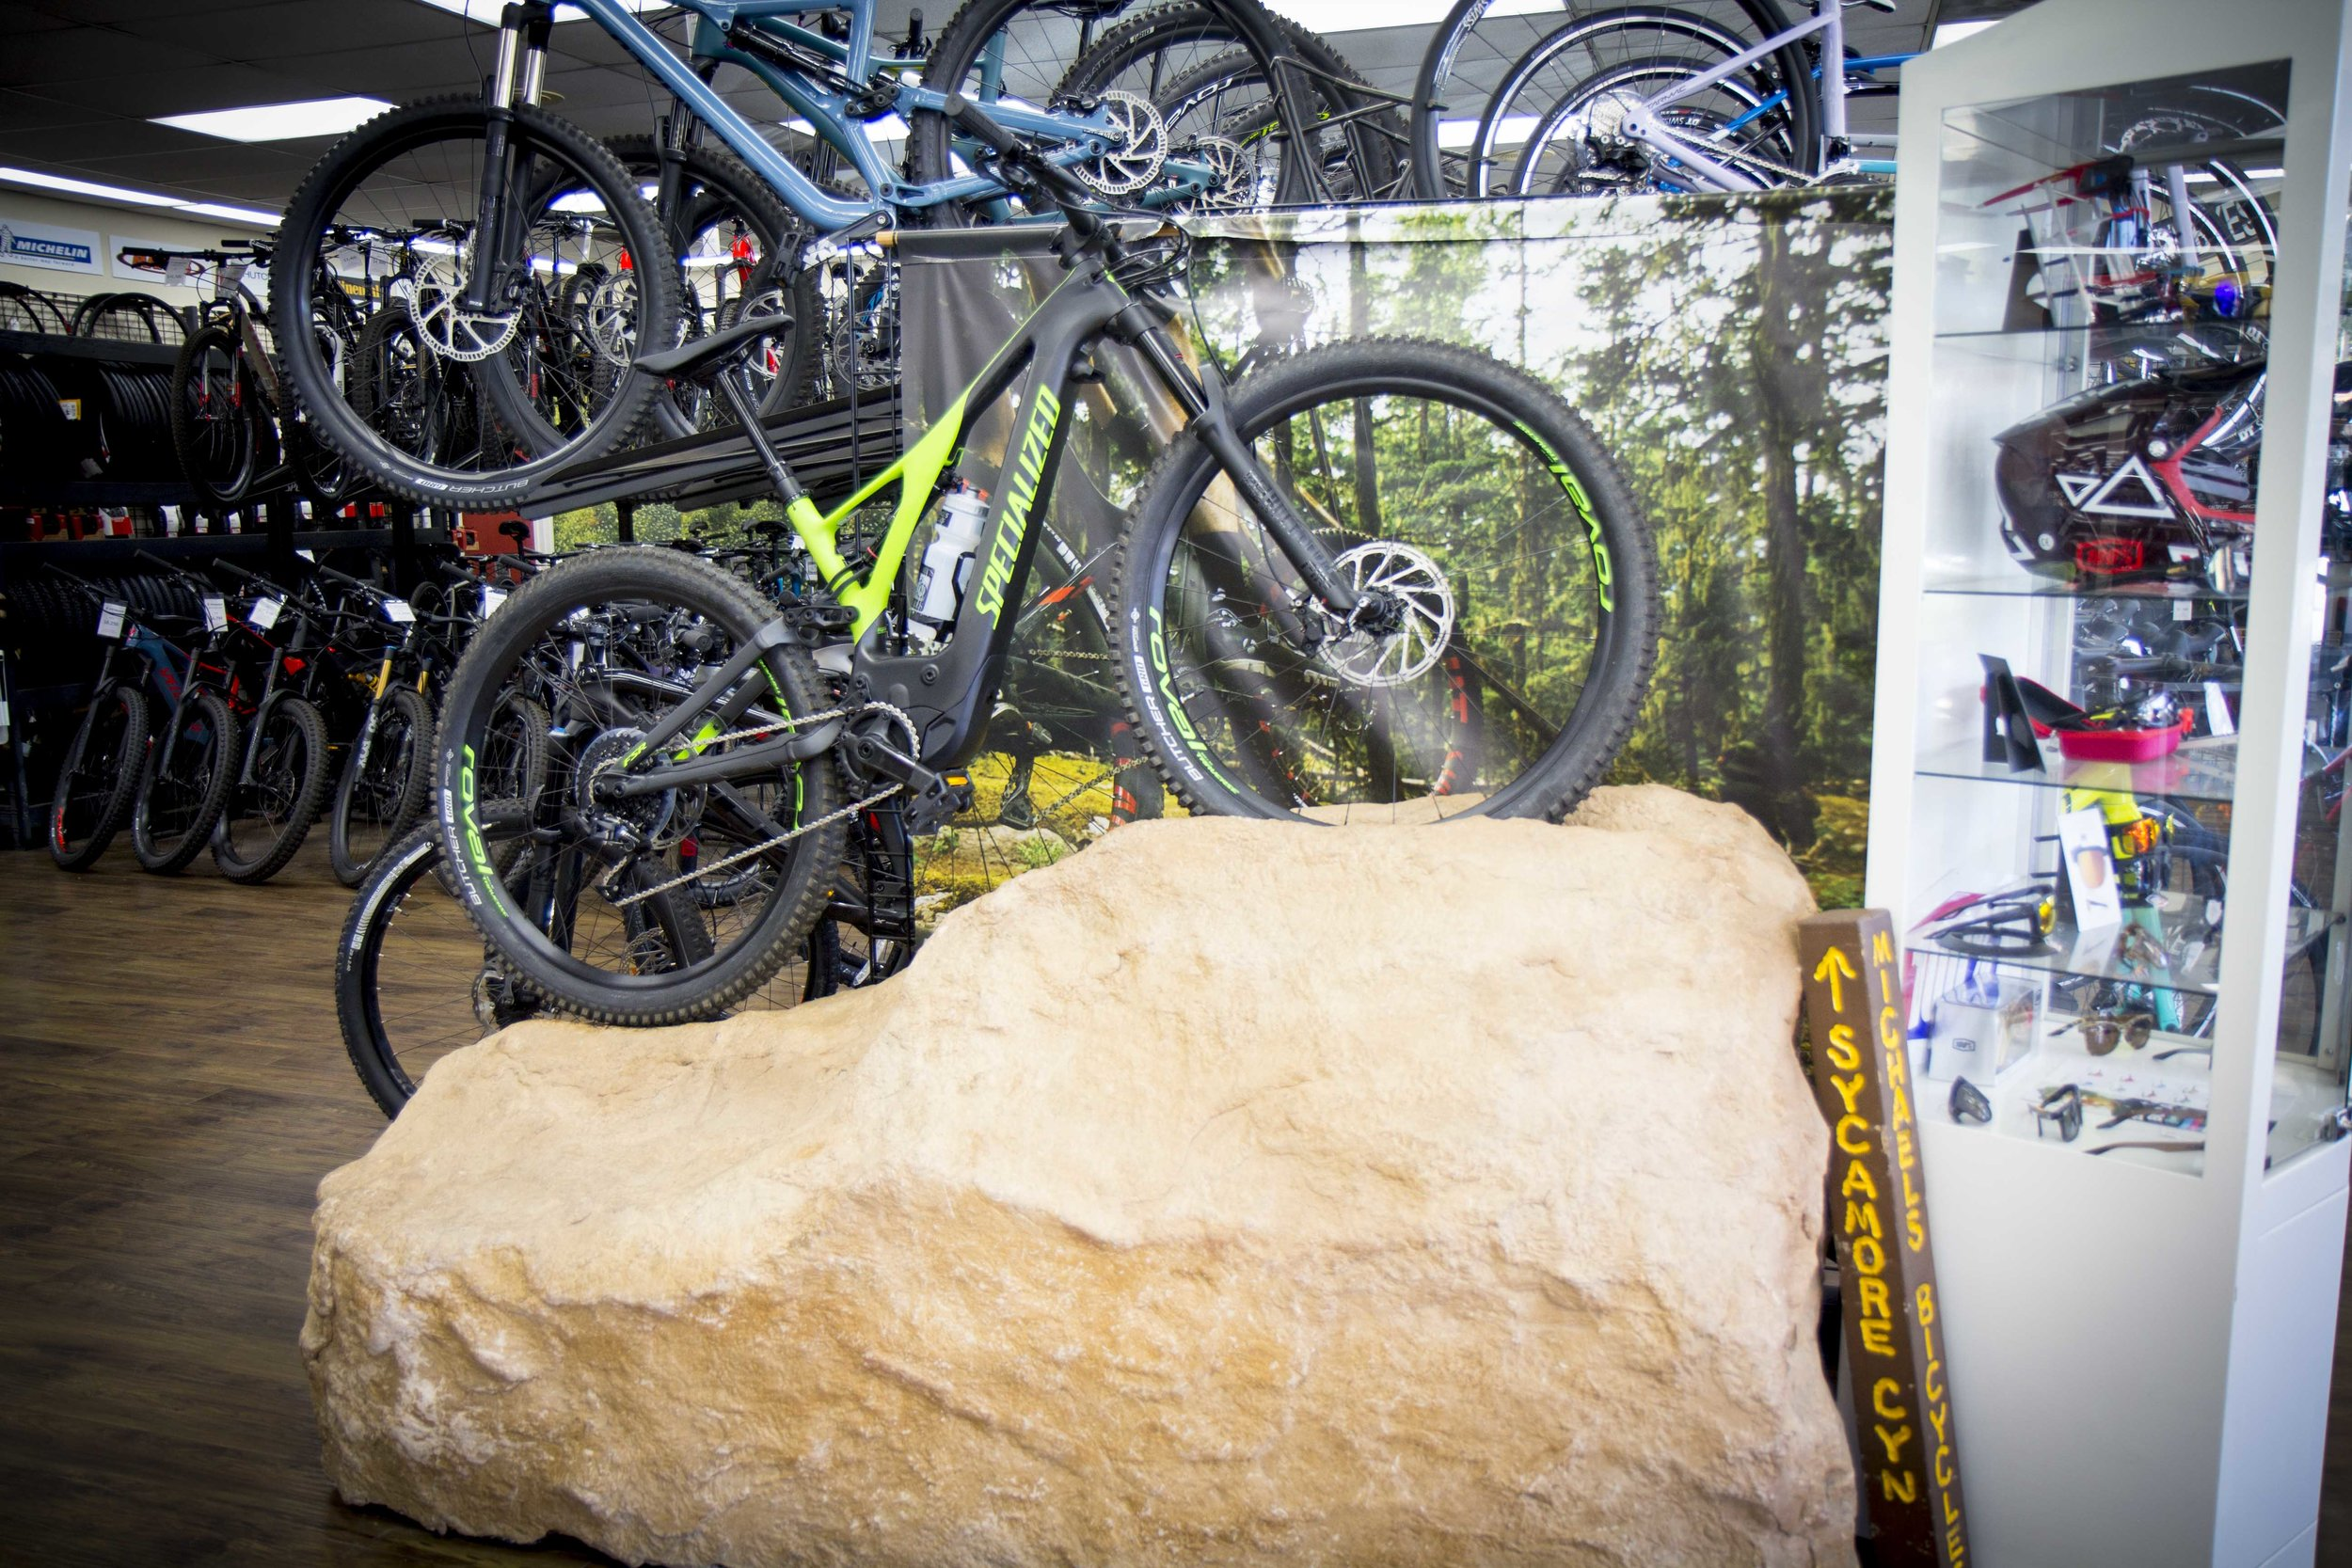 E-Bikes! - Michael's Bicycles Has a Large Selection of the Latest E-Bikes From Trek, Specialized, Electra and More!